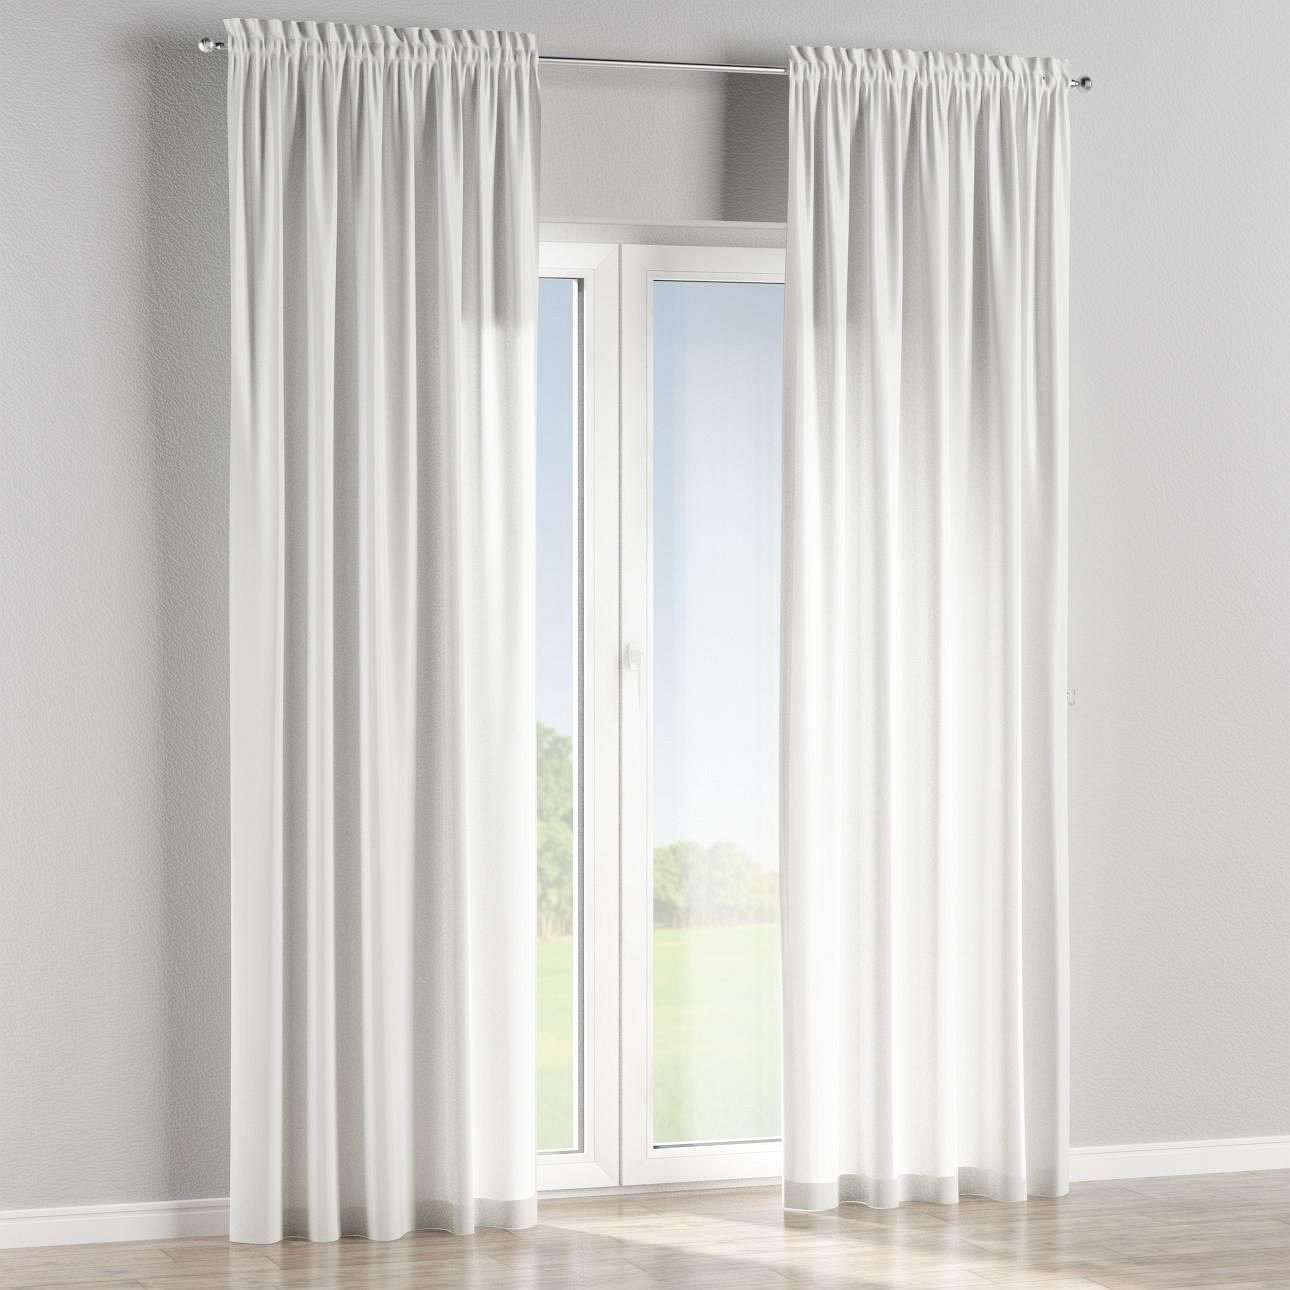 Slot and frill lined curtains in collection Norge, fabric: 140-84